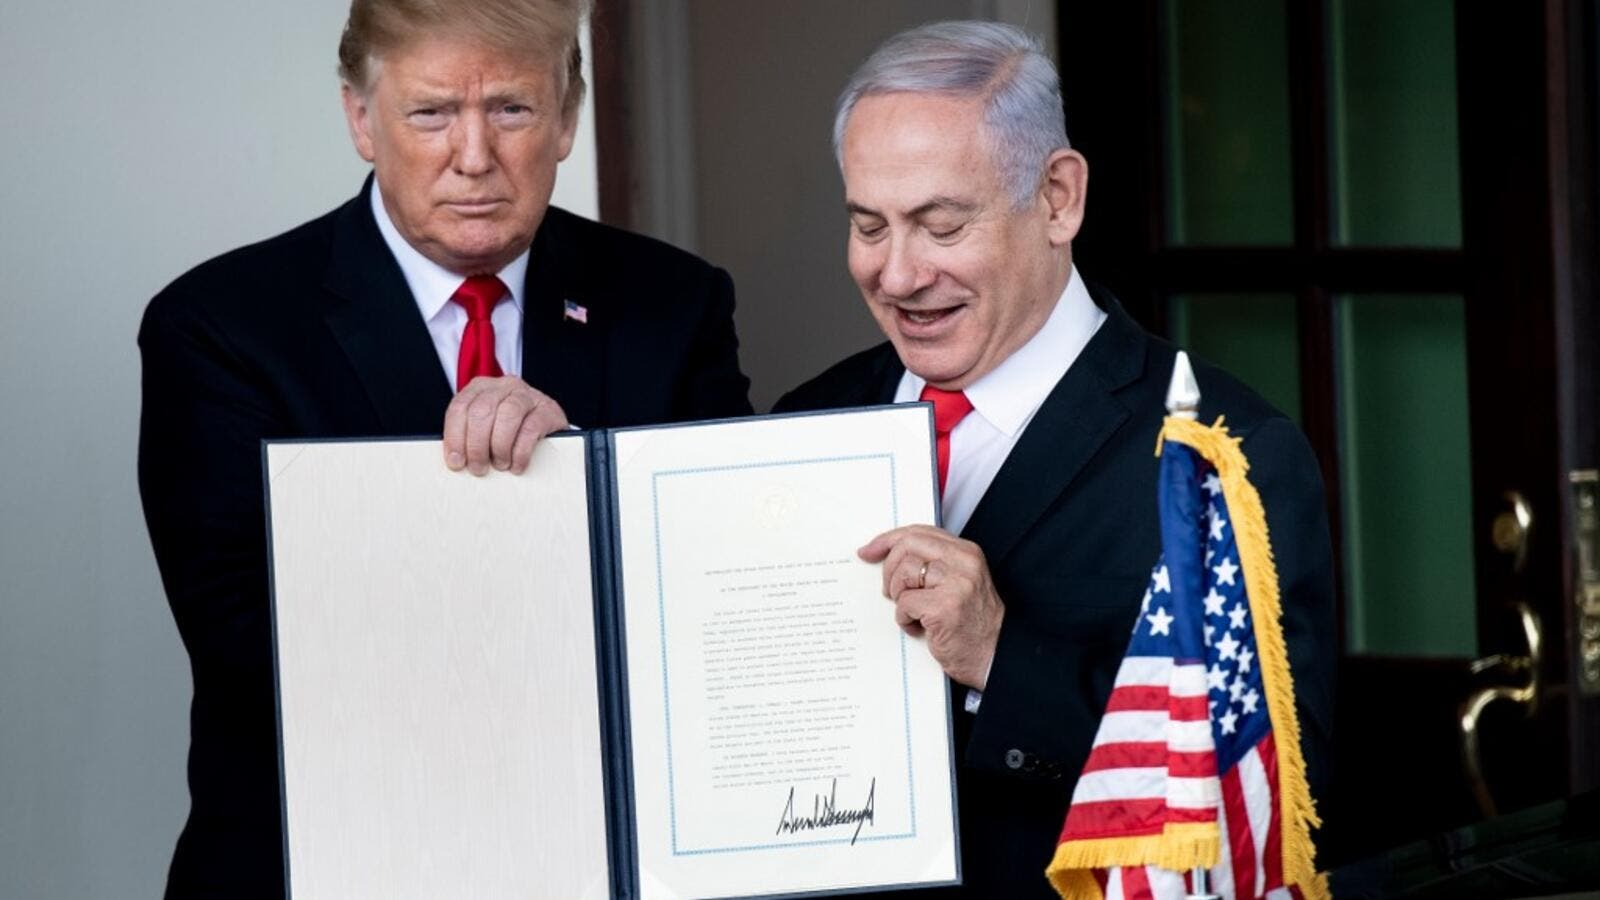 US President Donald Trump (L) and Israel's Prime Minister Benjamin Netanyahu hold up a Golan Heights proclamation. (Brendan Smialowski / AFP)